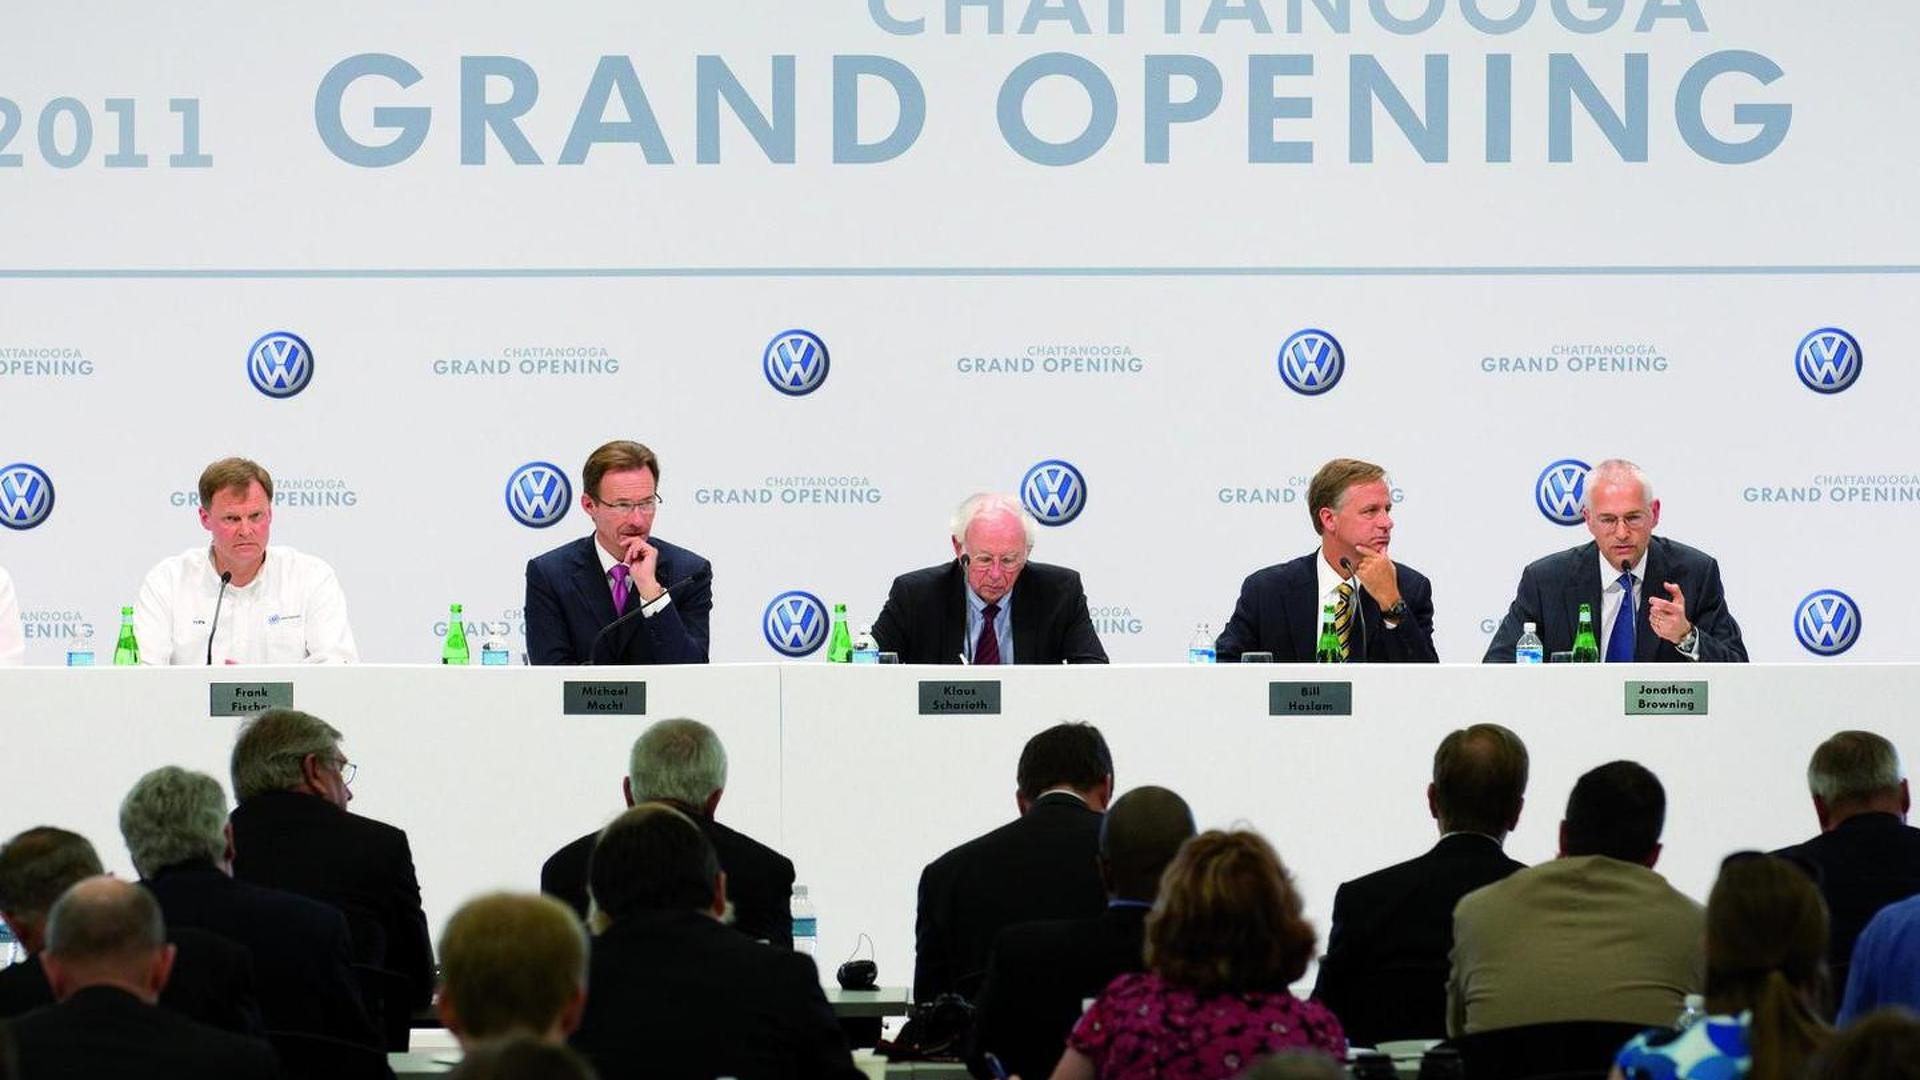 Little Darth Vader opens VW's Chattanooga plant [video]